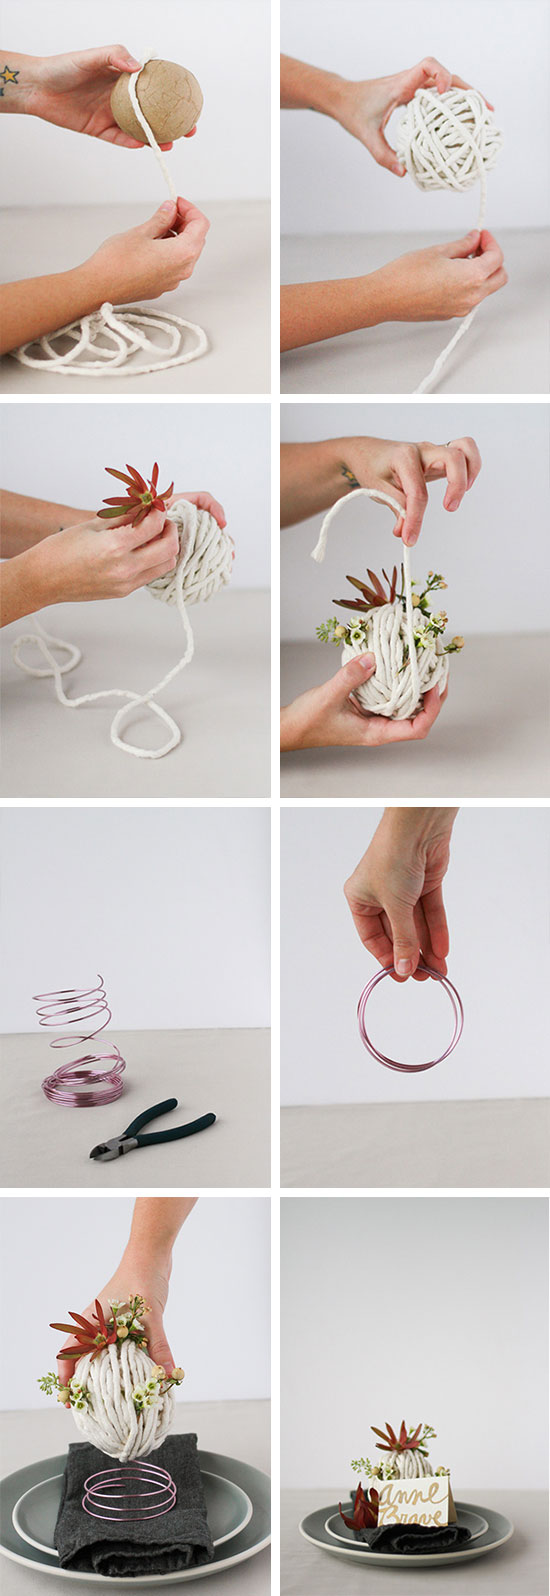 steps-floral-rope-ball-diy